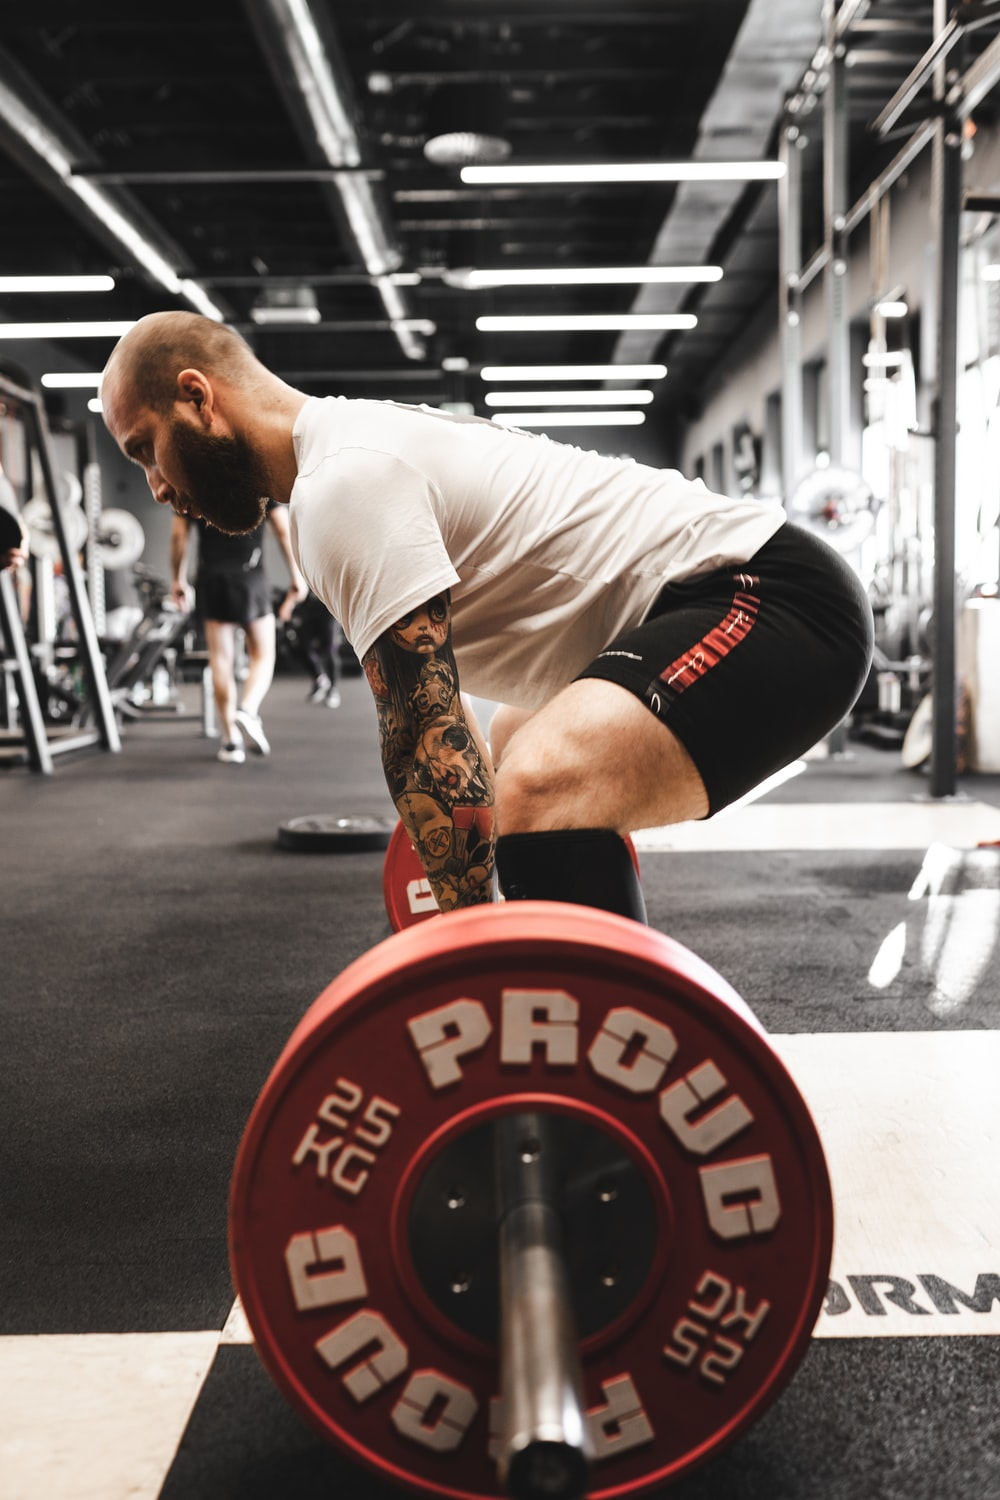 man in white t-shirt and black shorts carrying red and black barbell